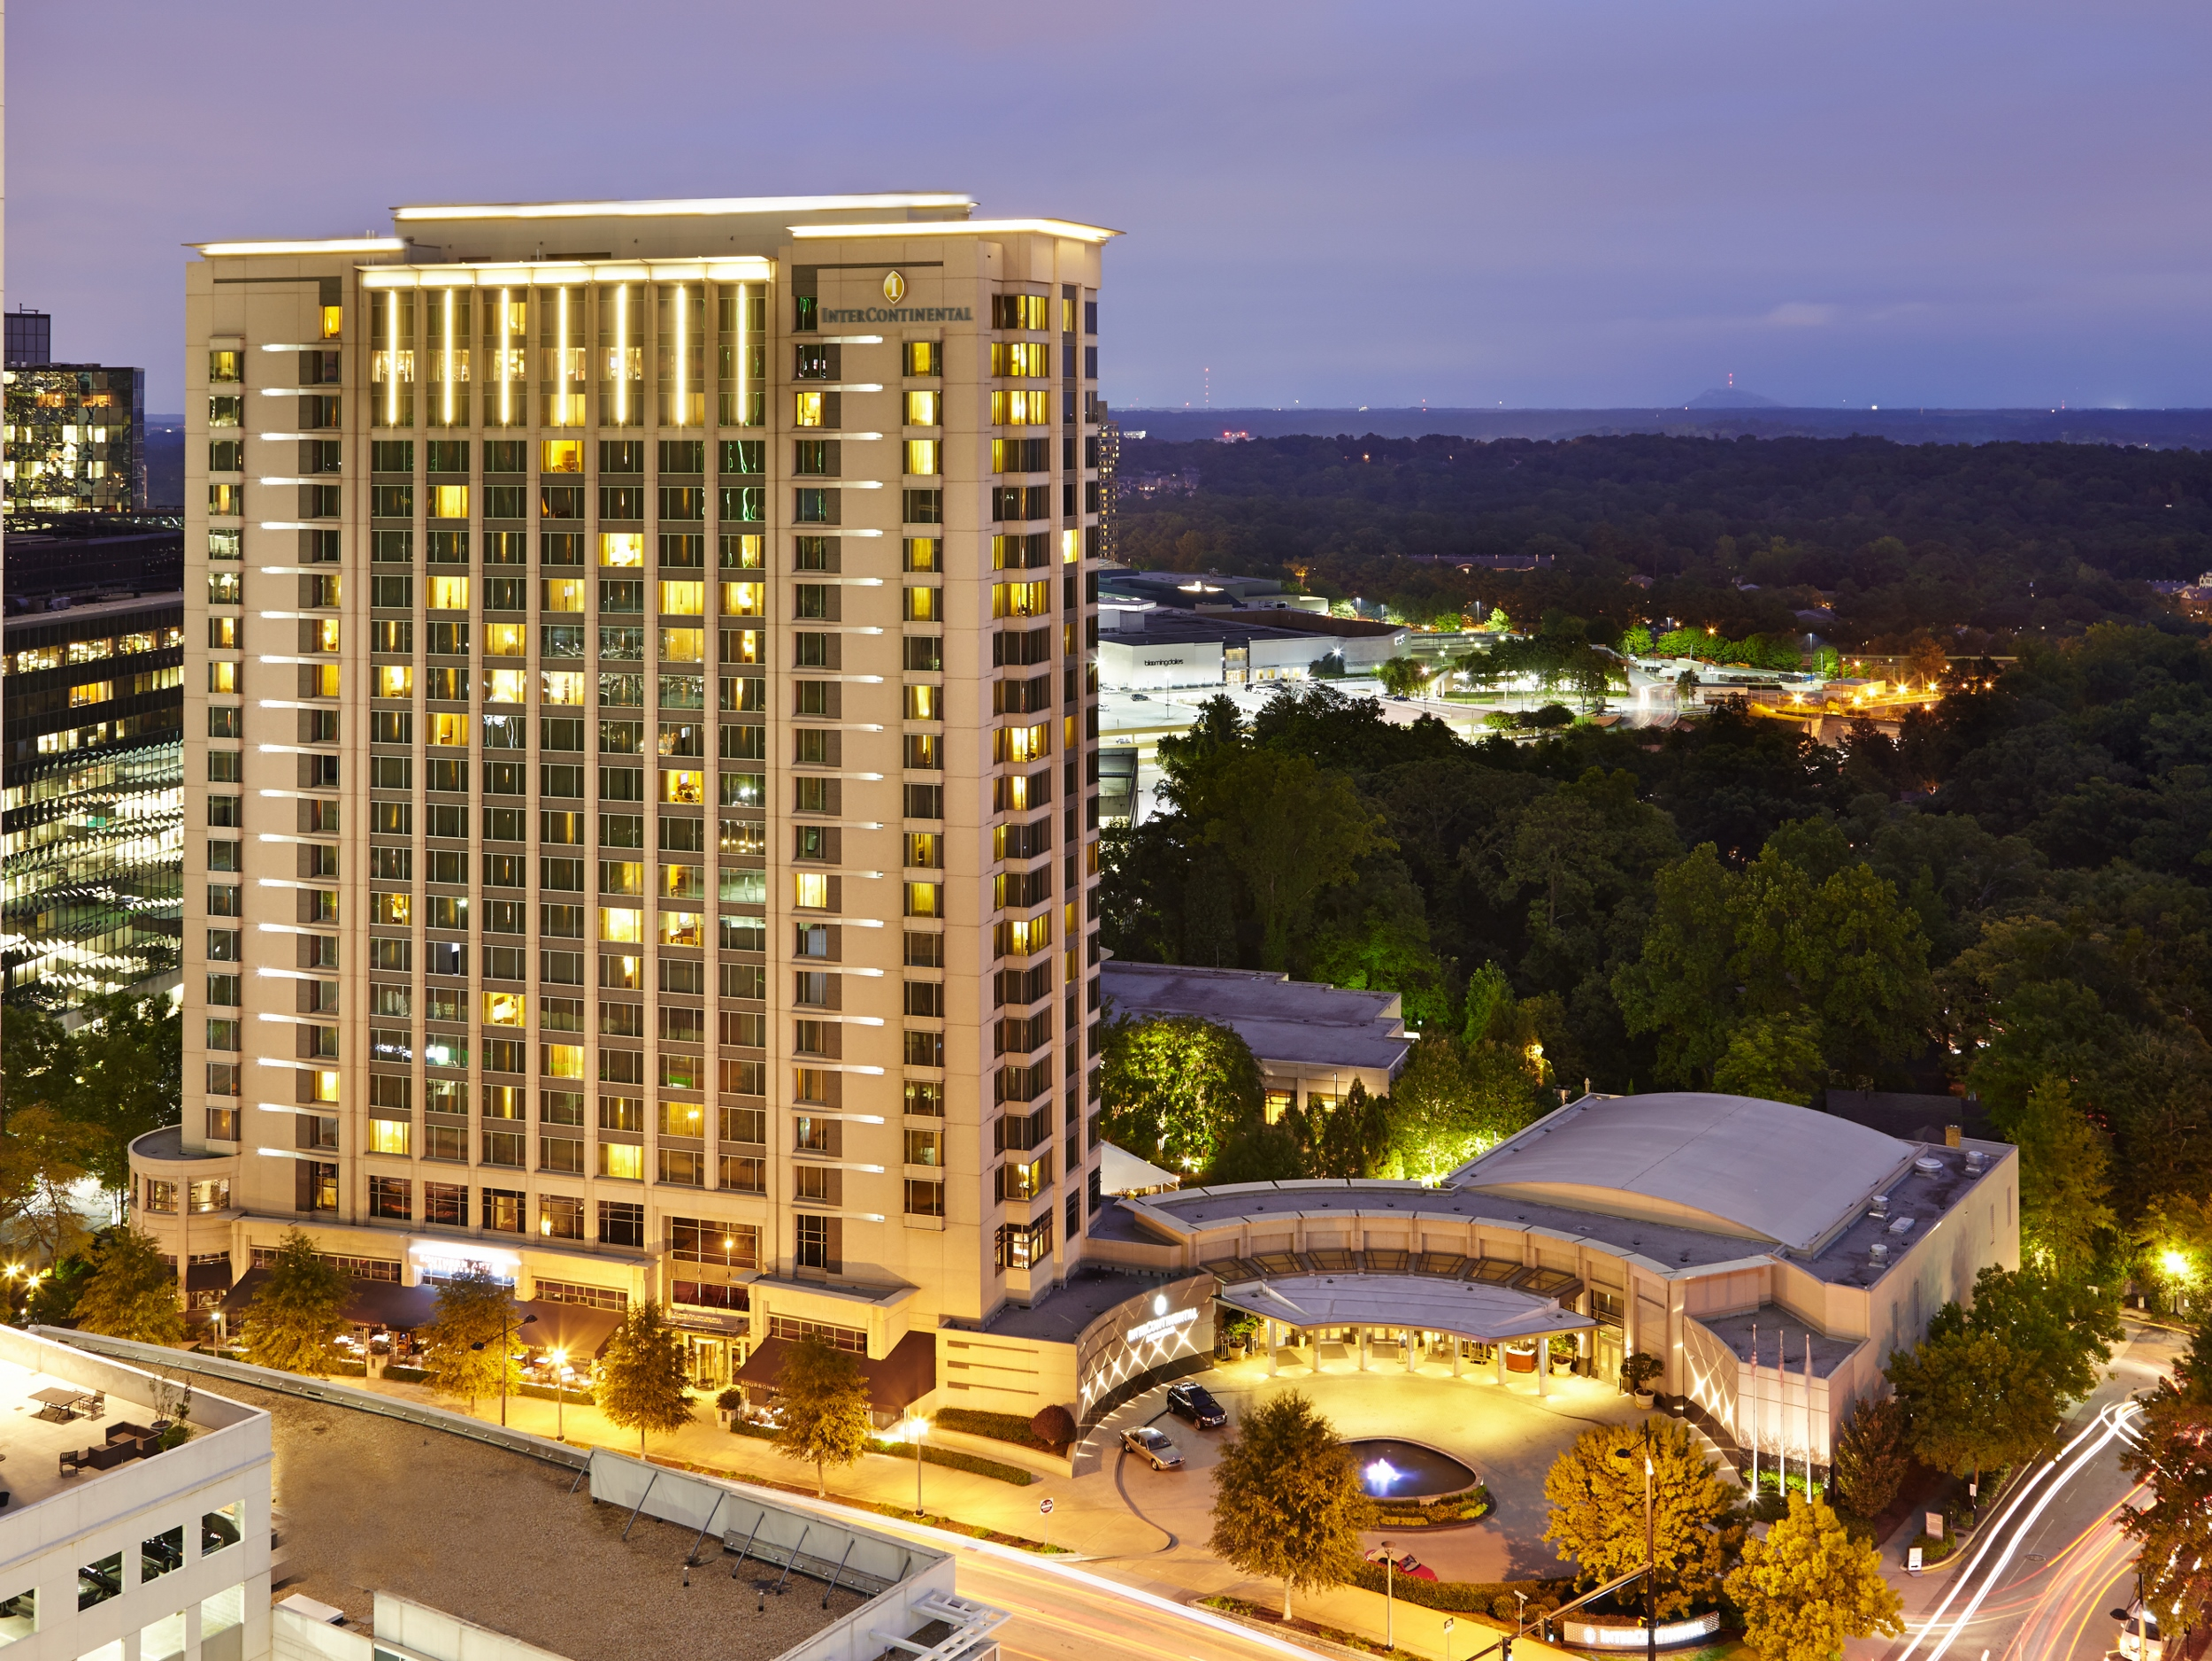 Associated luxury hotels international alhi augments portfolio in atlanta georgia intercontinental buckhead atlanta joins collection